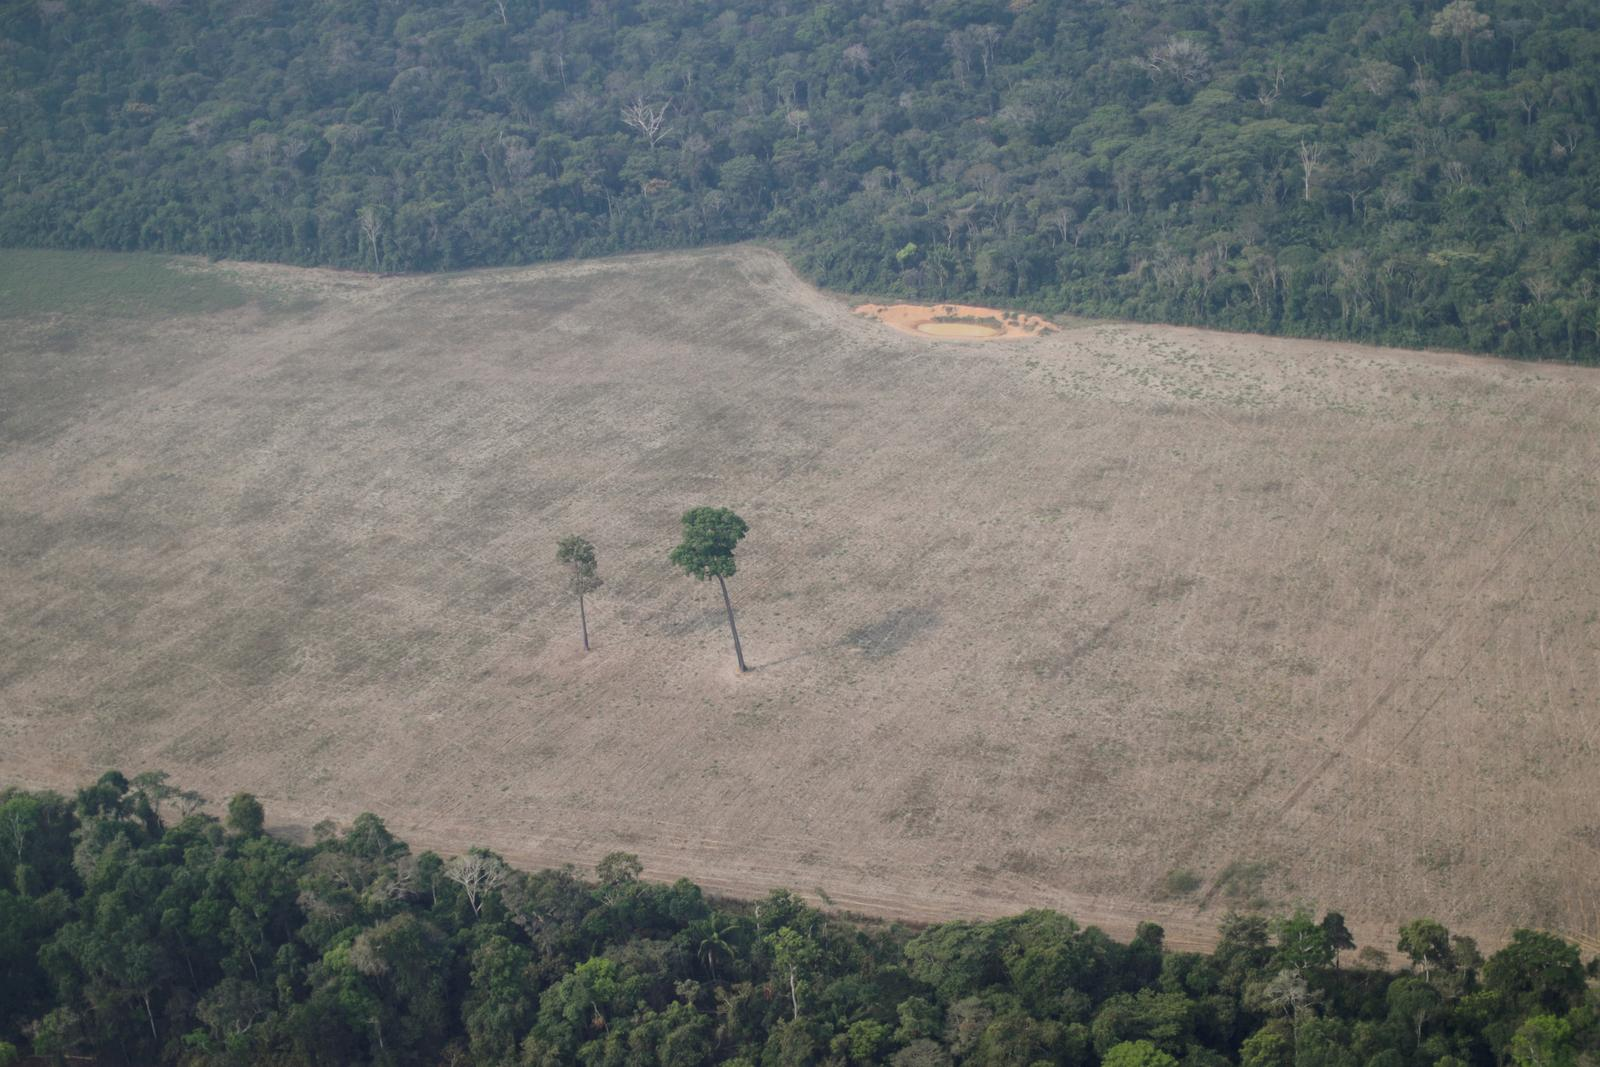 Brazil seeks $1 billion in foreign aid to curb Amazon deforestation by 30-40% -environmental minister